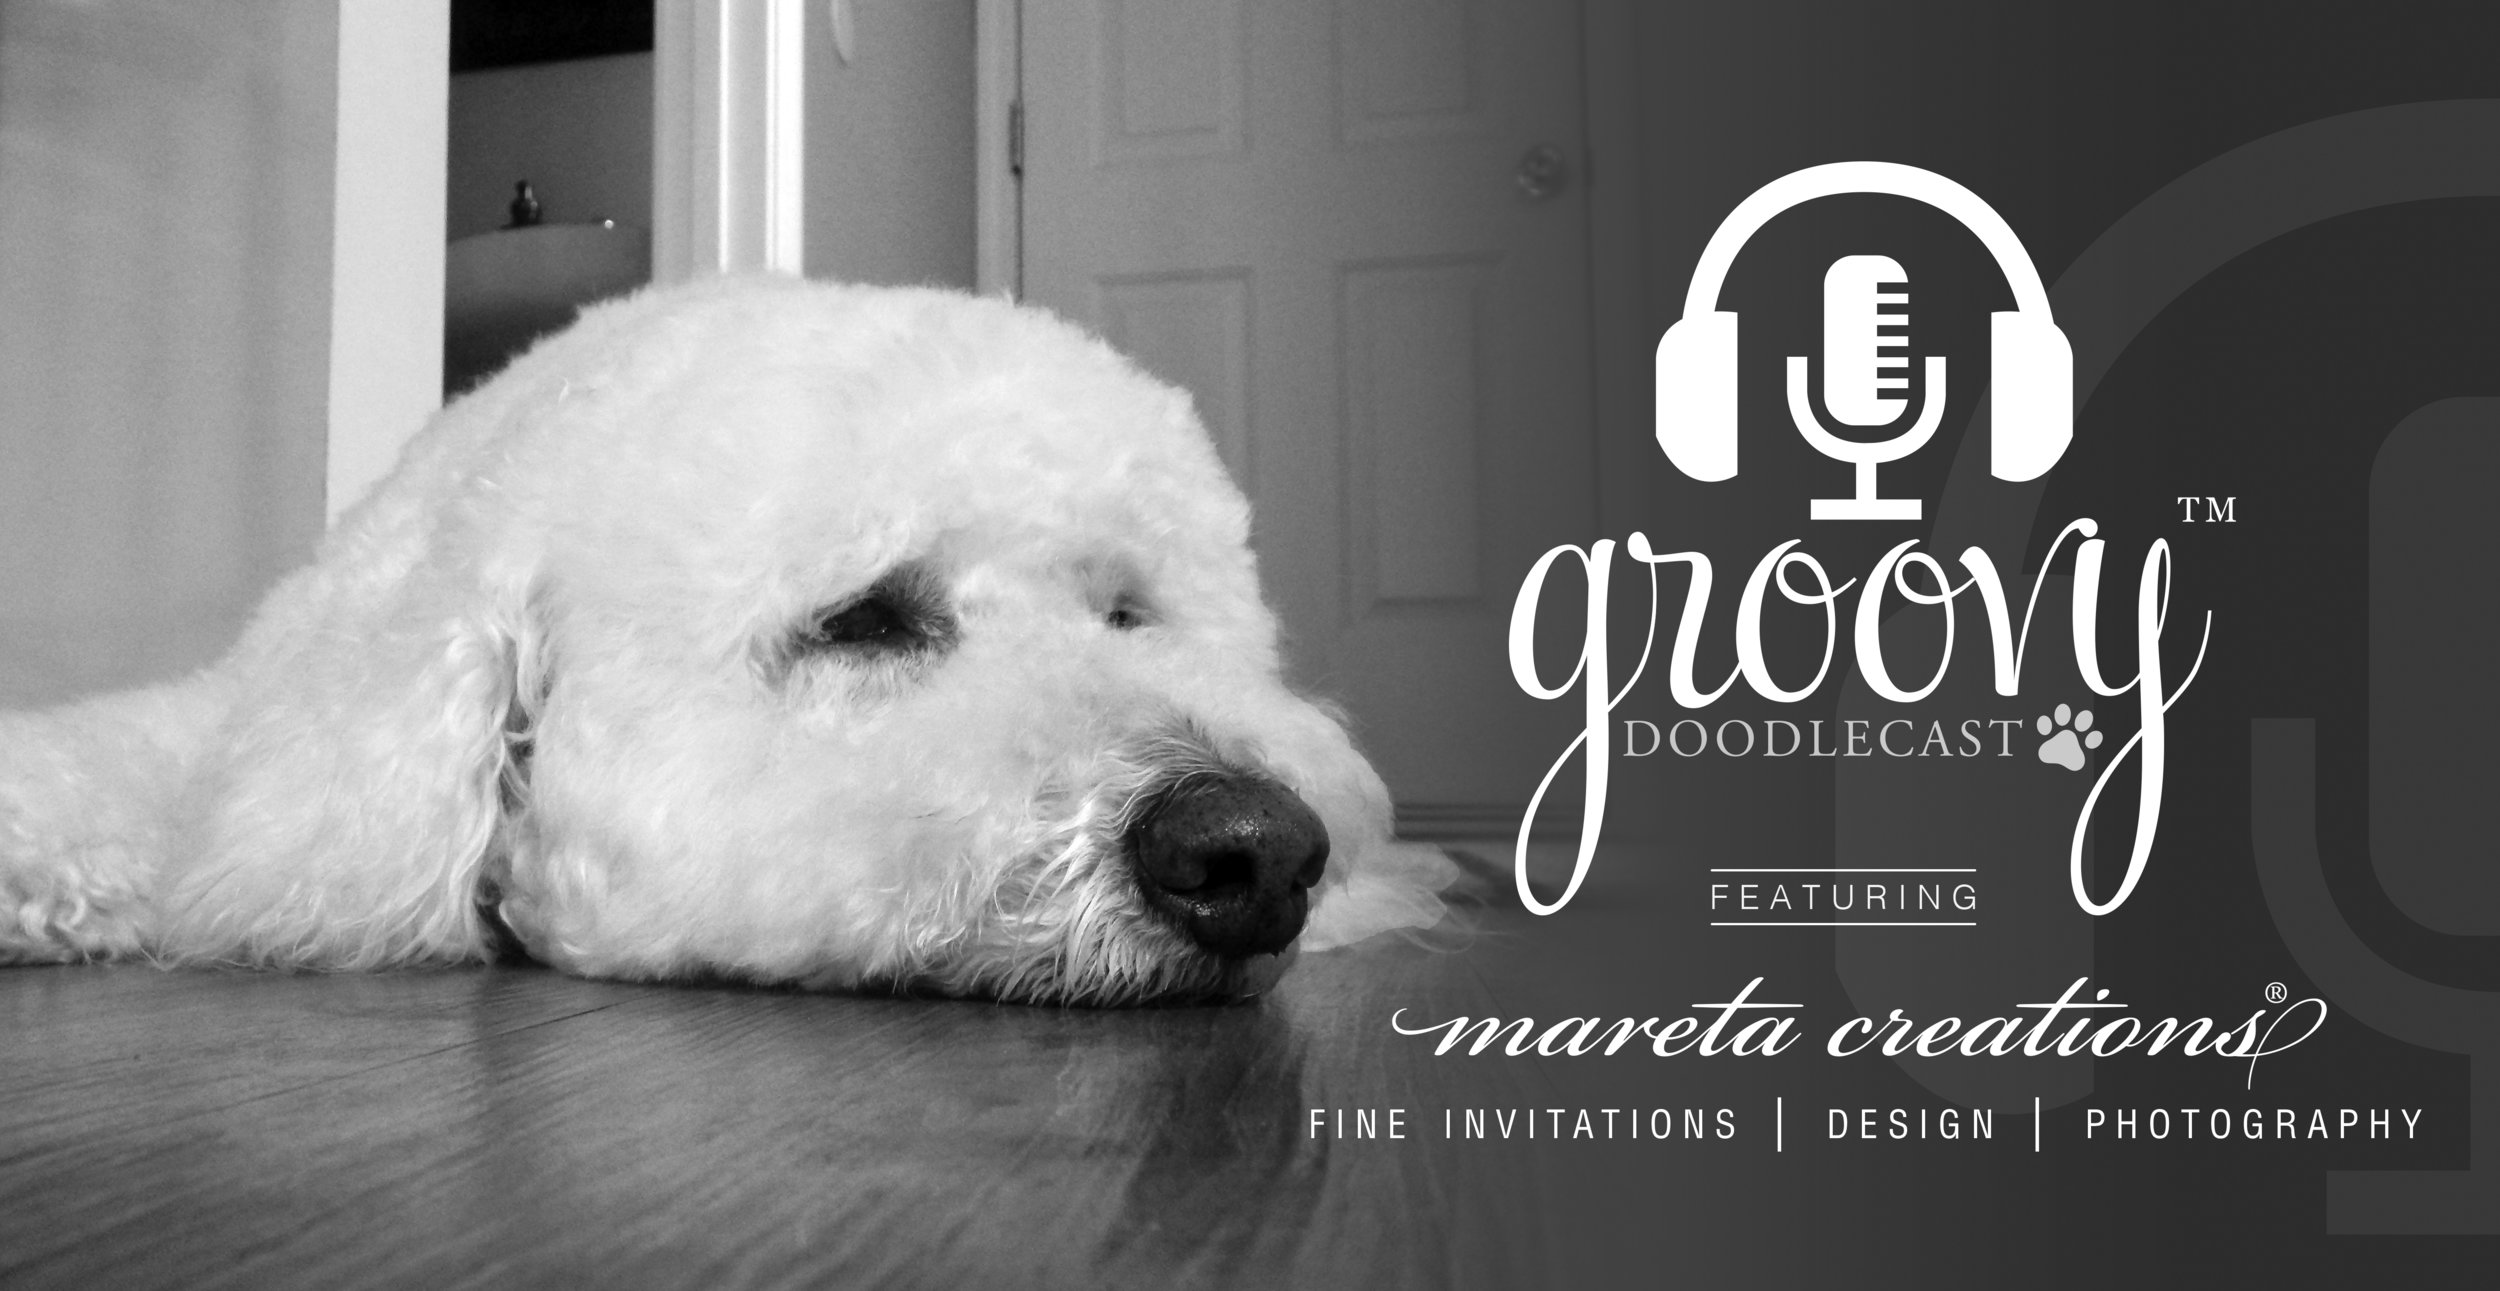 Visit  www.GroovyGoldendoodles.com  to hear Doodle Mom Cathy Bennett's first Groovy DoodleCast™ interview with Makya Renée Little of Mareta Creations.